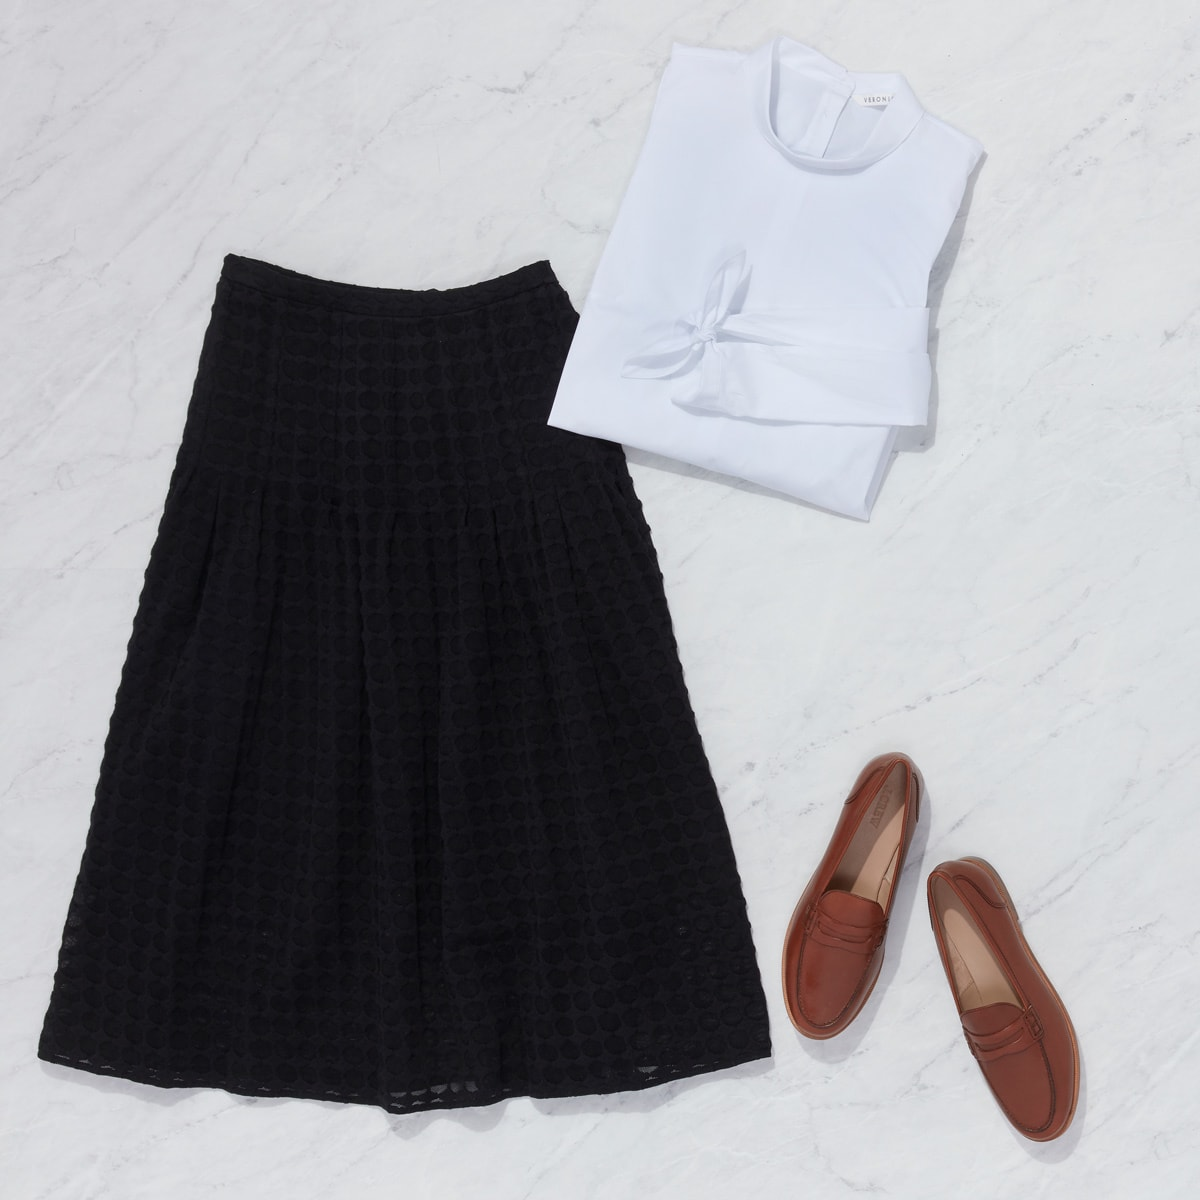 Dress and midi skirt outfit for women